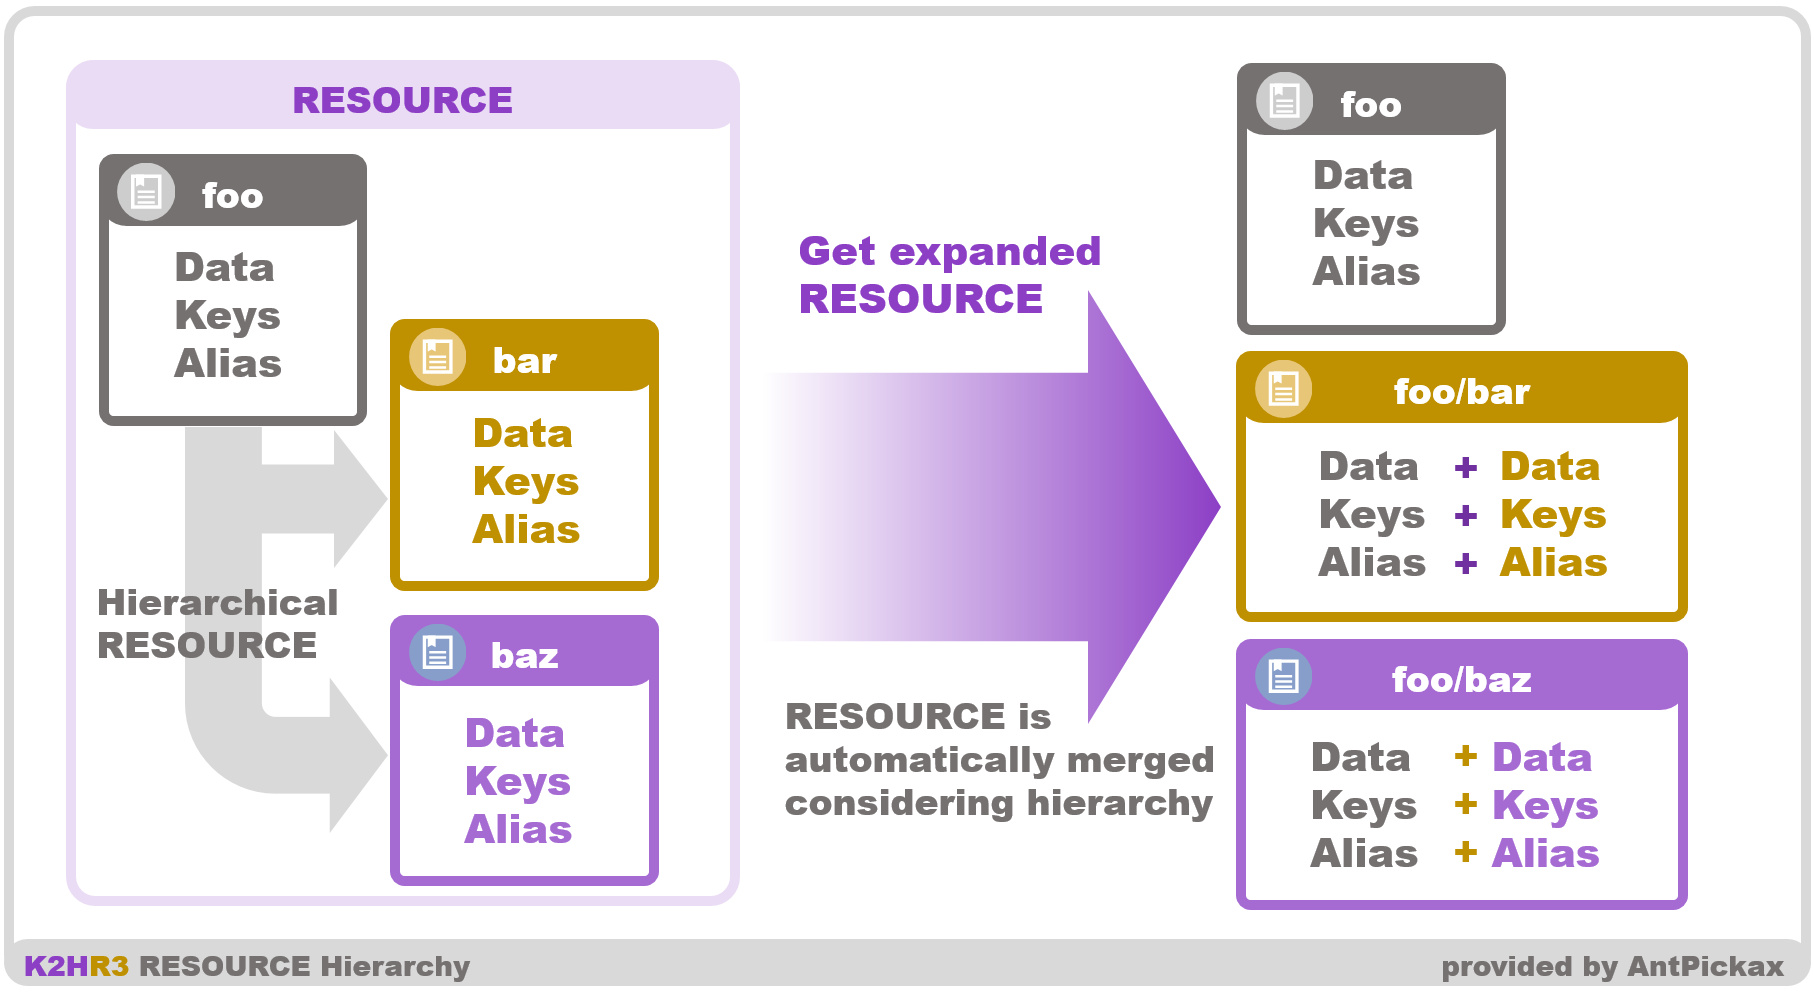 K2HR3 Usage - Resource hierarchy